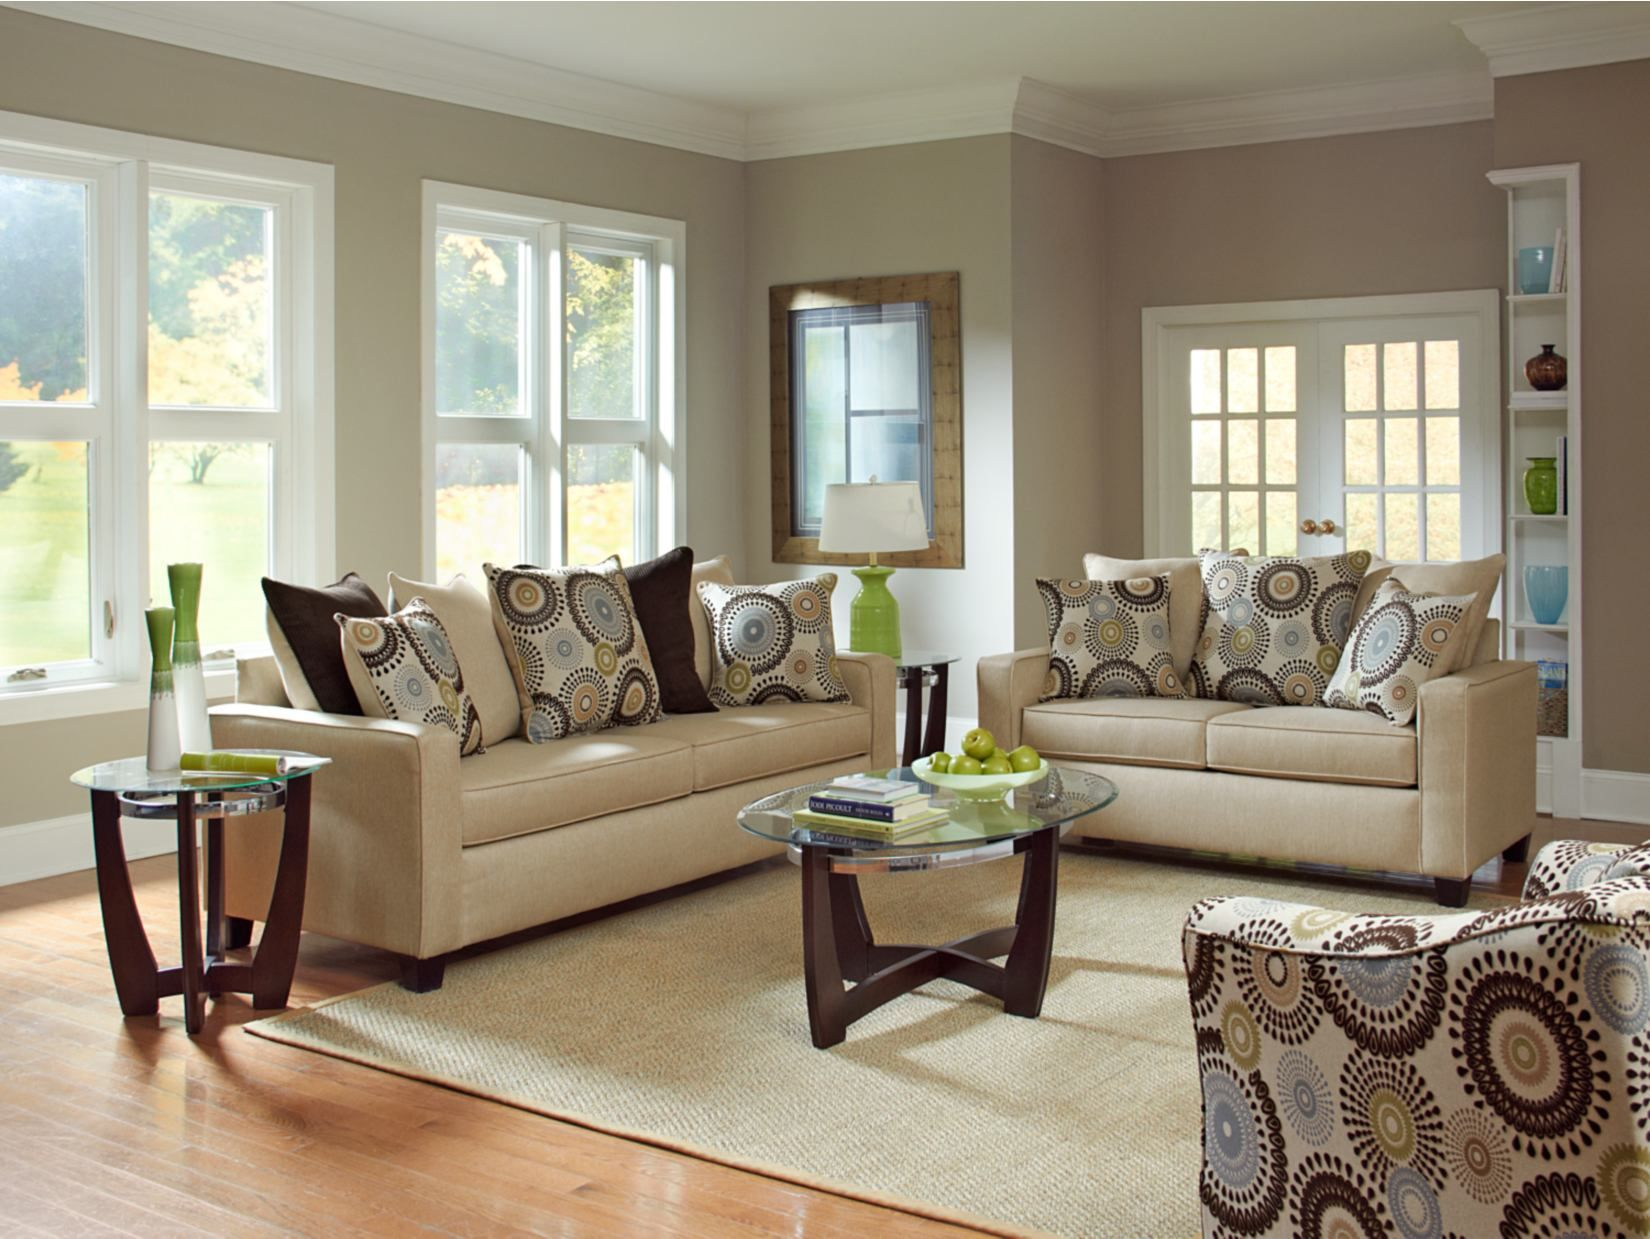 Cream Sofa Living Room Designs Adorable Stoked Cream Sofa  Value City Furniture  For The Home Design Decoration